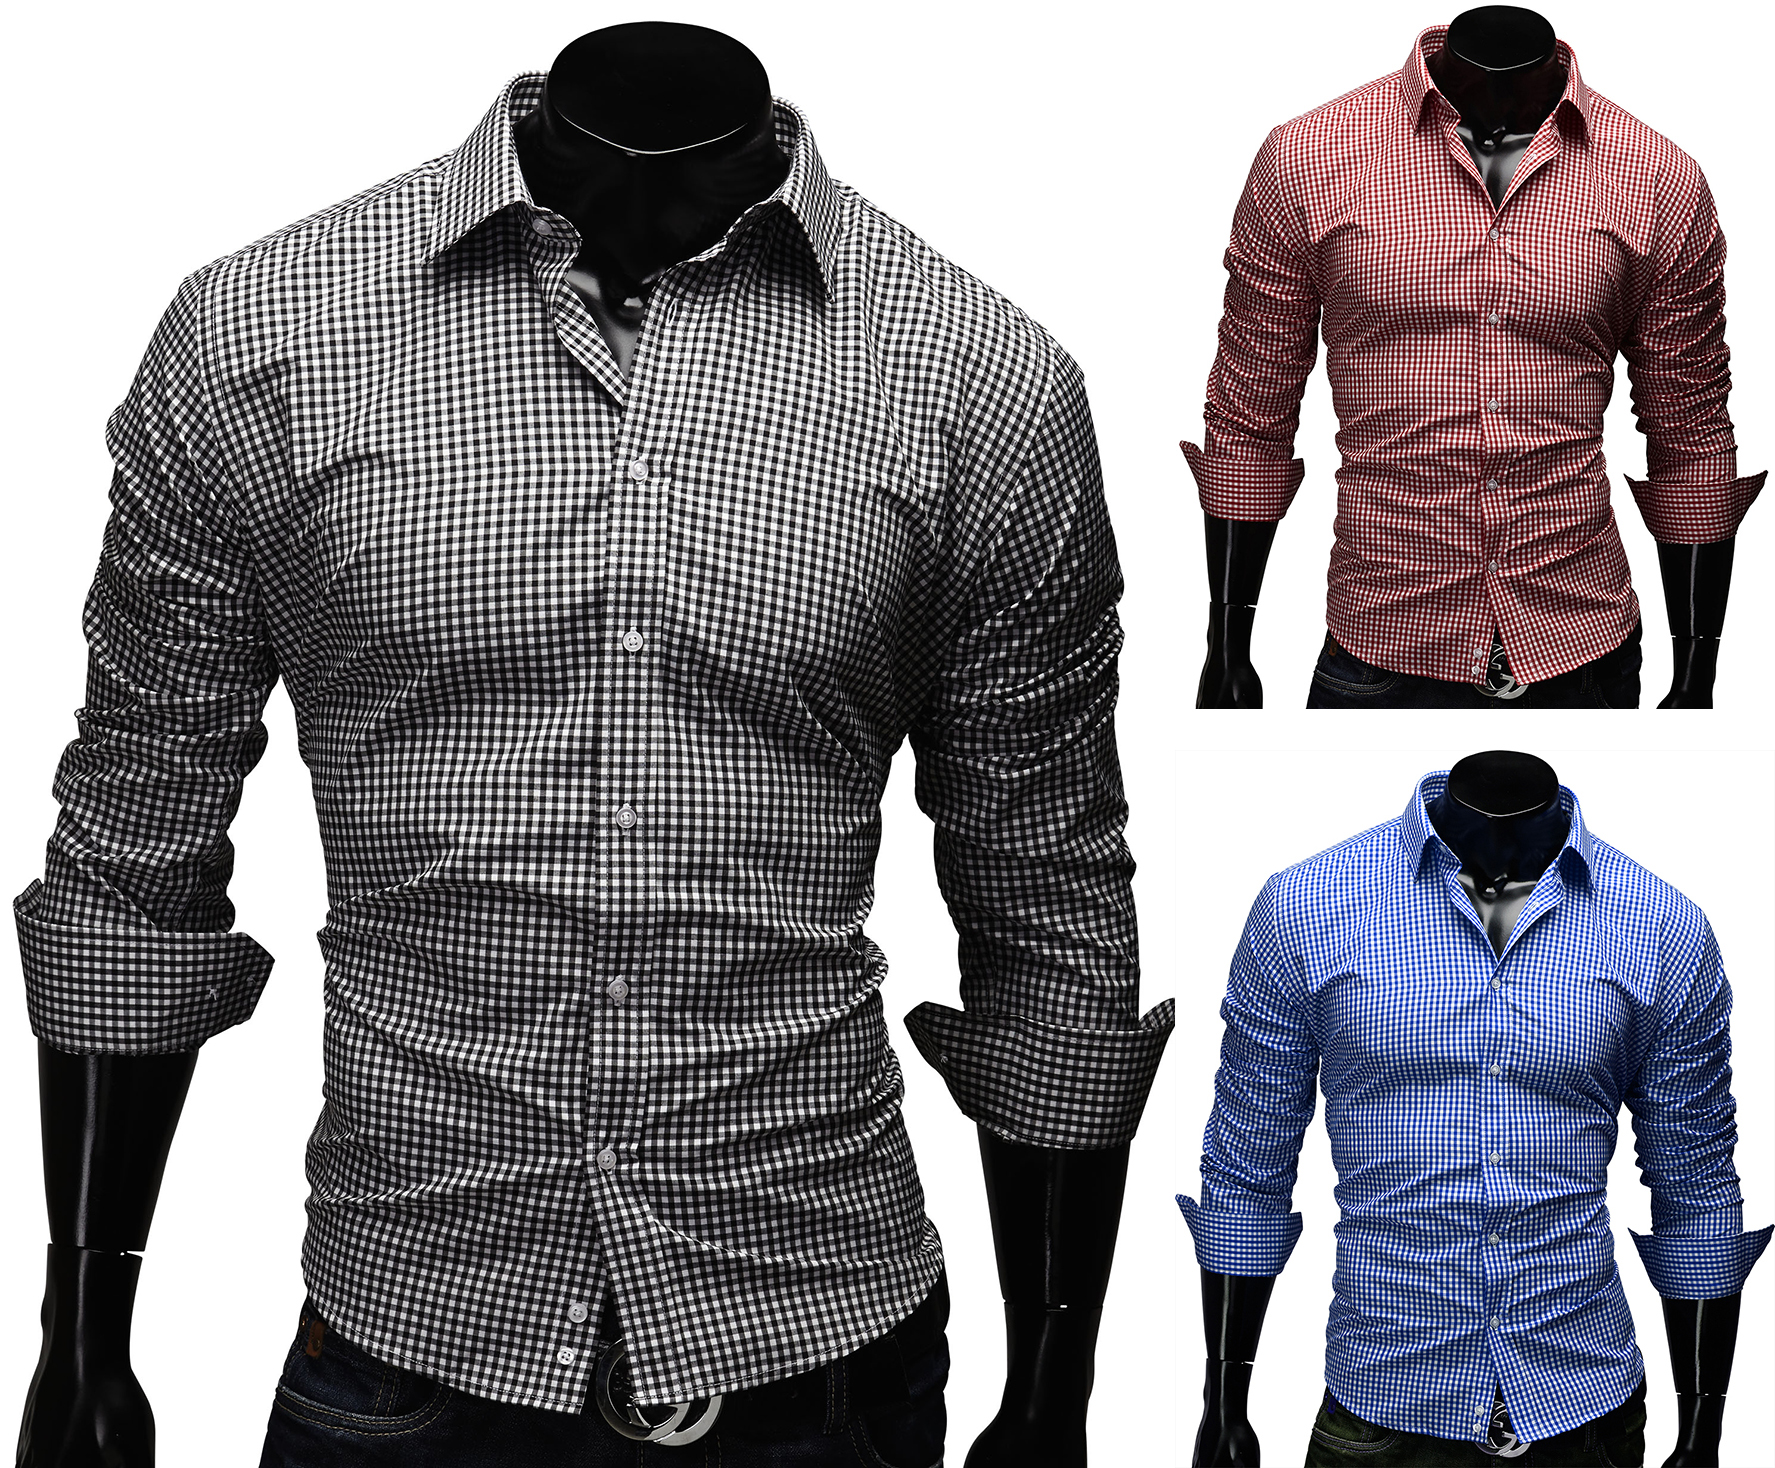 men 39 s shirt size s xxl slim fit trendy style checked t shirt polo 41. Black Bedroom Furniture Sets. Home Design Ideas